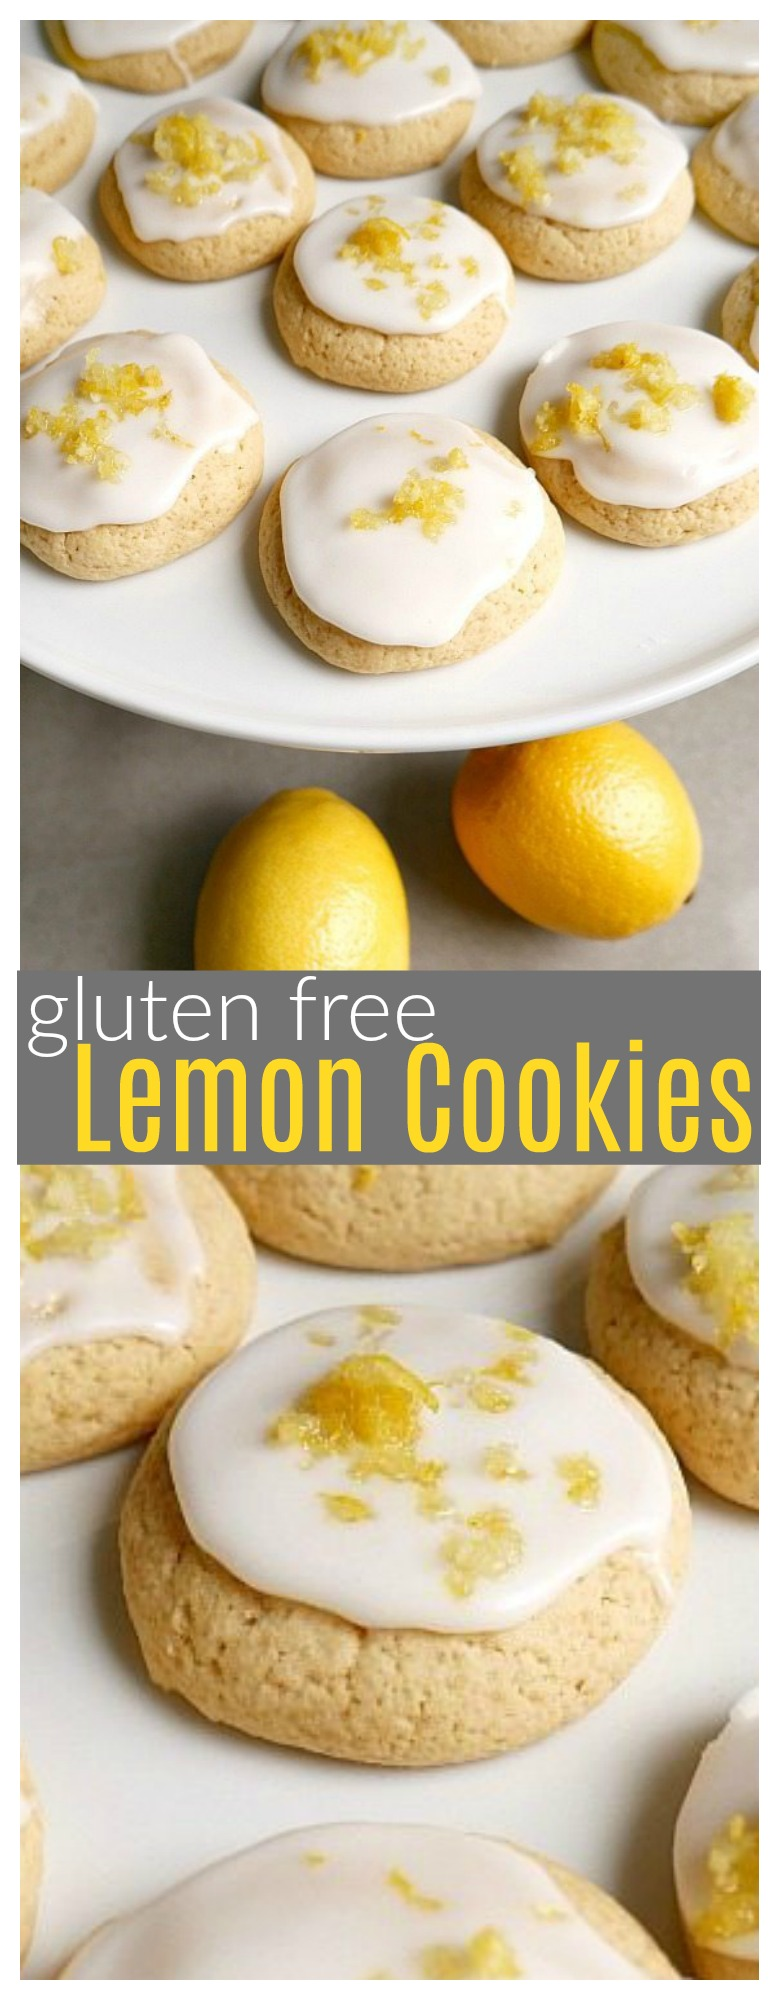 These GF lemon cookies with fresh lemon frosting are absolutely declines! They are a fresh and light dessert for summer.